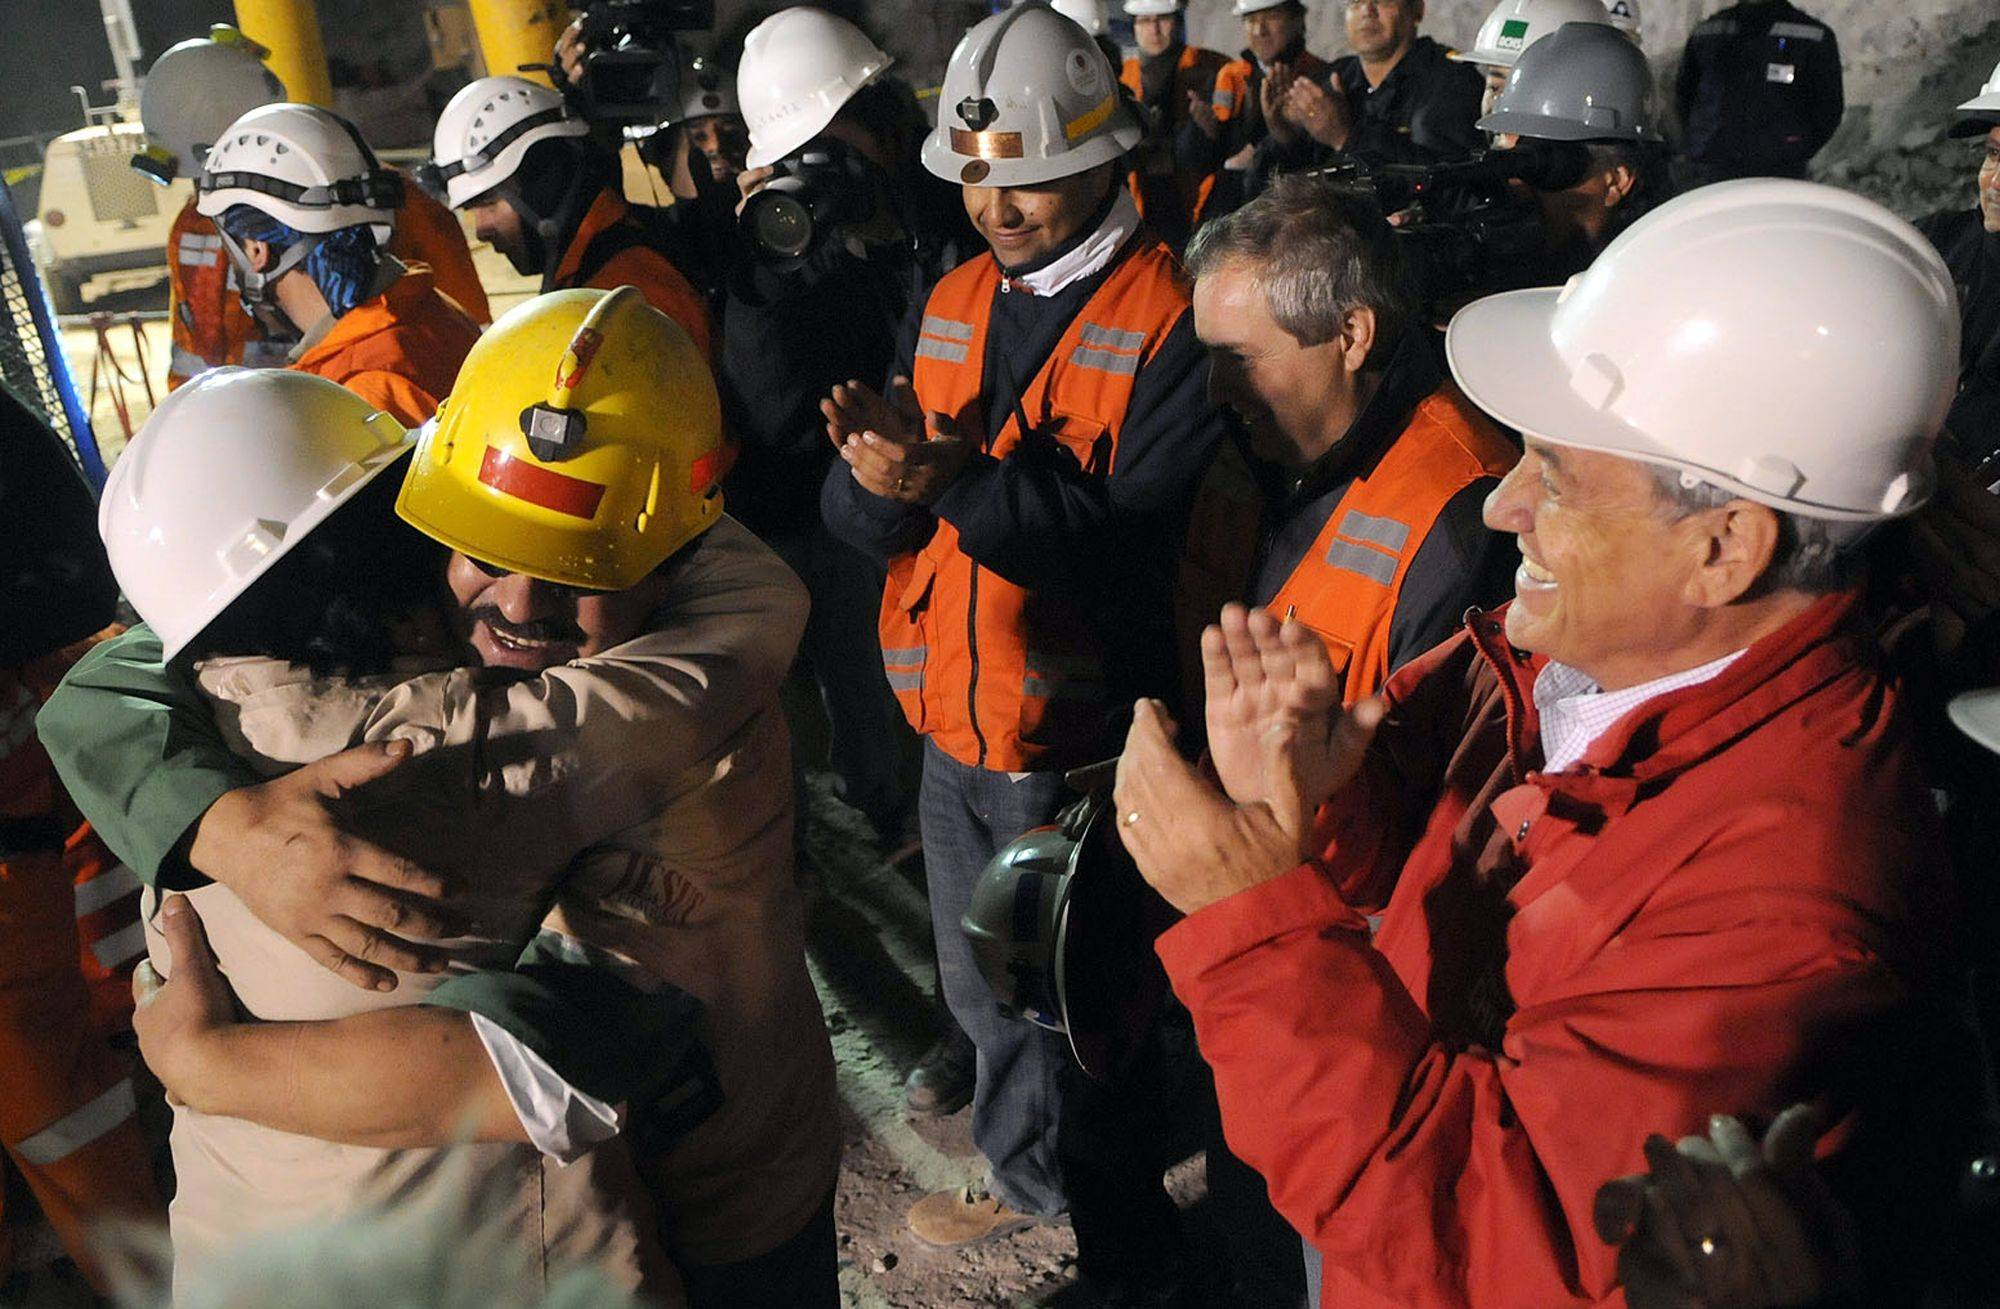 In this photo released by the Chilean presidential press office, miner Juan Illanes, second right, hugs his wife, name unavailable, as Chile's President Sebastian Pinera applauds, after after being rescued from the collapsed San Jose gold and copper mine where he was trapped with 32 other miners for over two months near Copiapo, Chile, early Wednesday, Oct. 13, 2010.